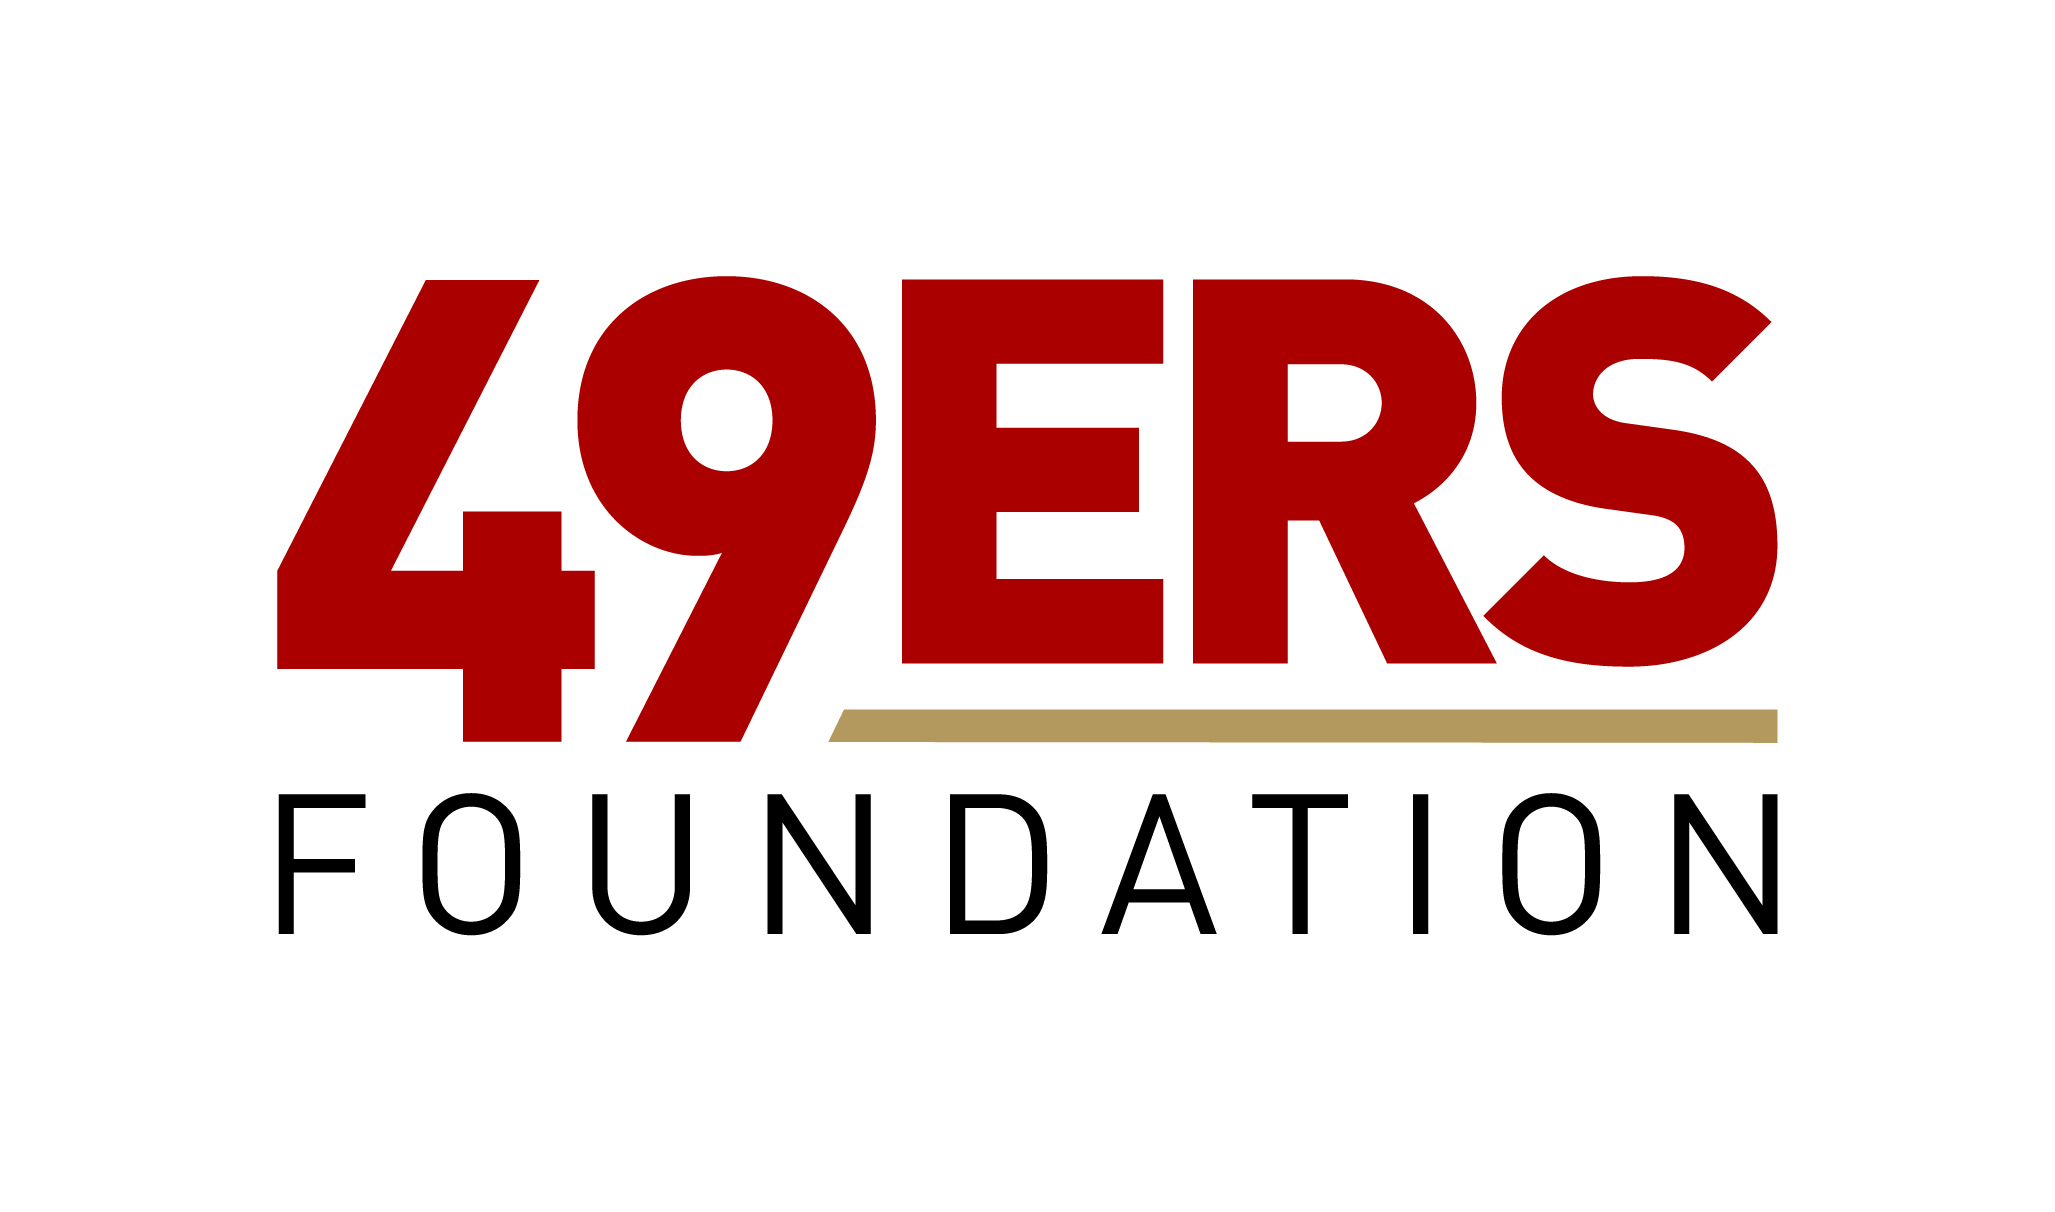 49ers Foundation